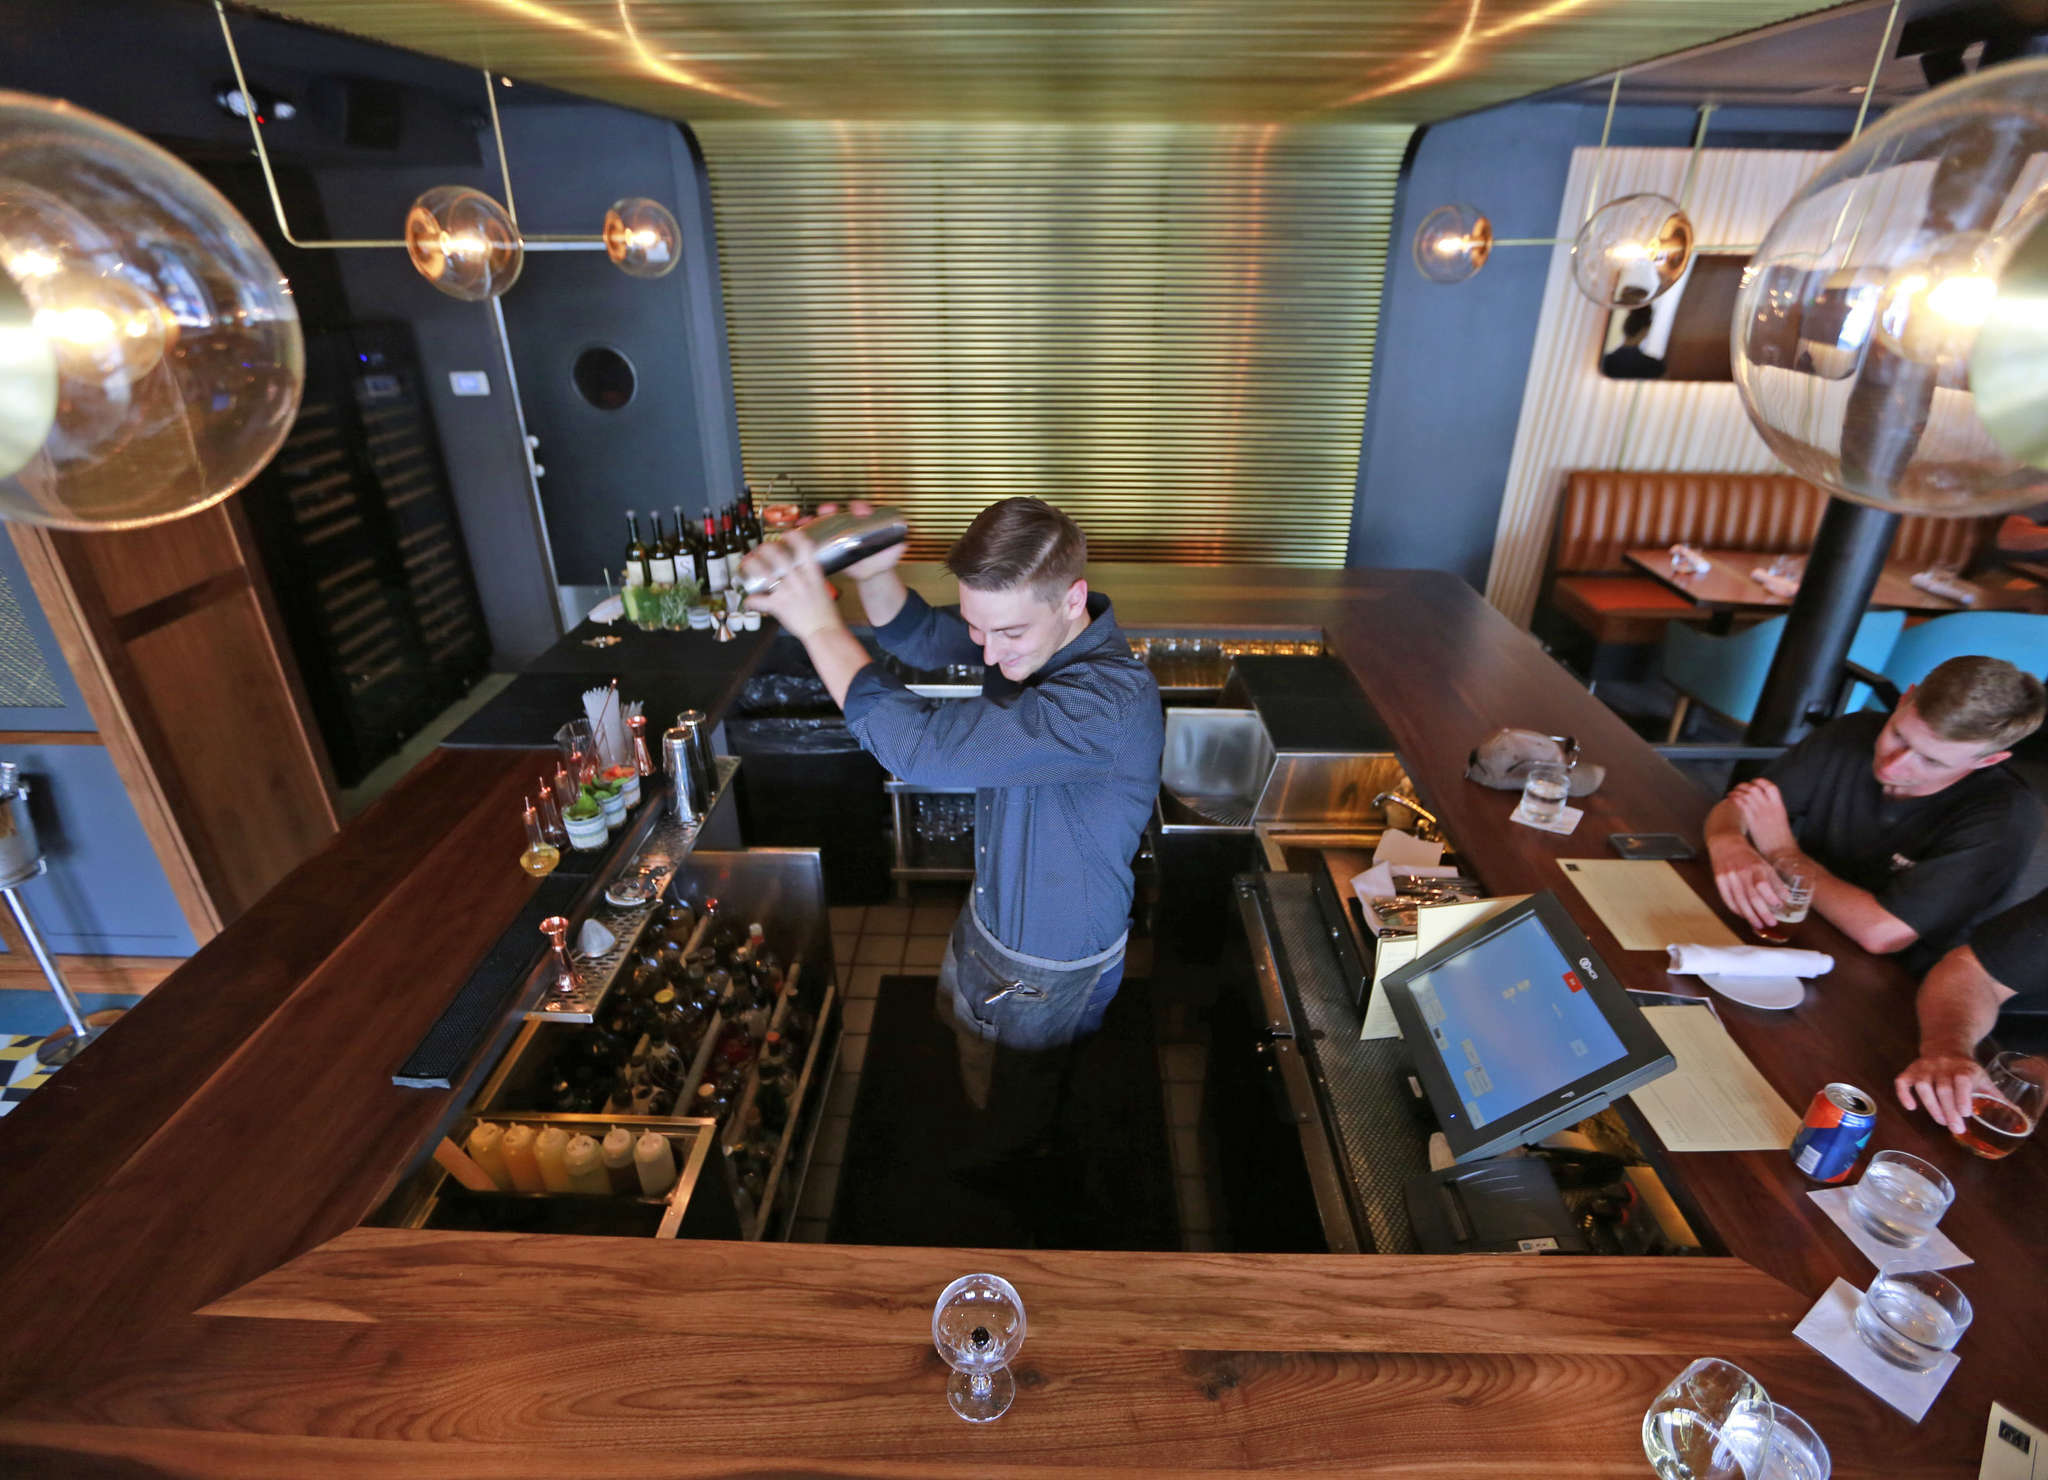 Aaron Deary behind the bar at Root in Fishtown. Root´s wines by the glass avoid conventional choicesin favor of bracing Chignin, aromatic Italian ansonica, earthy gamay, ripe Portuguese baga, and Greek xinomavro.